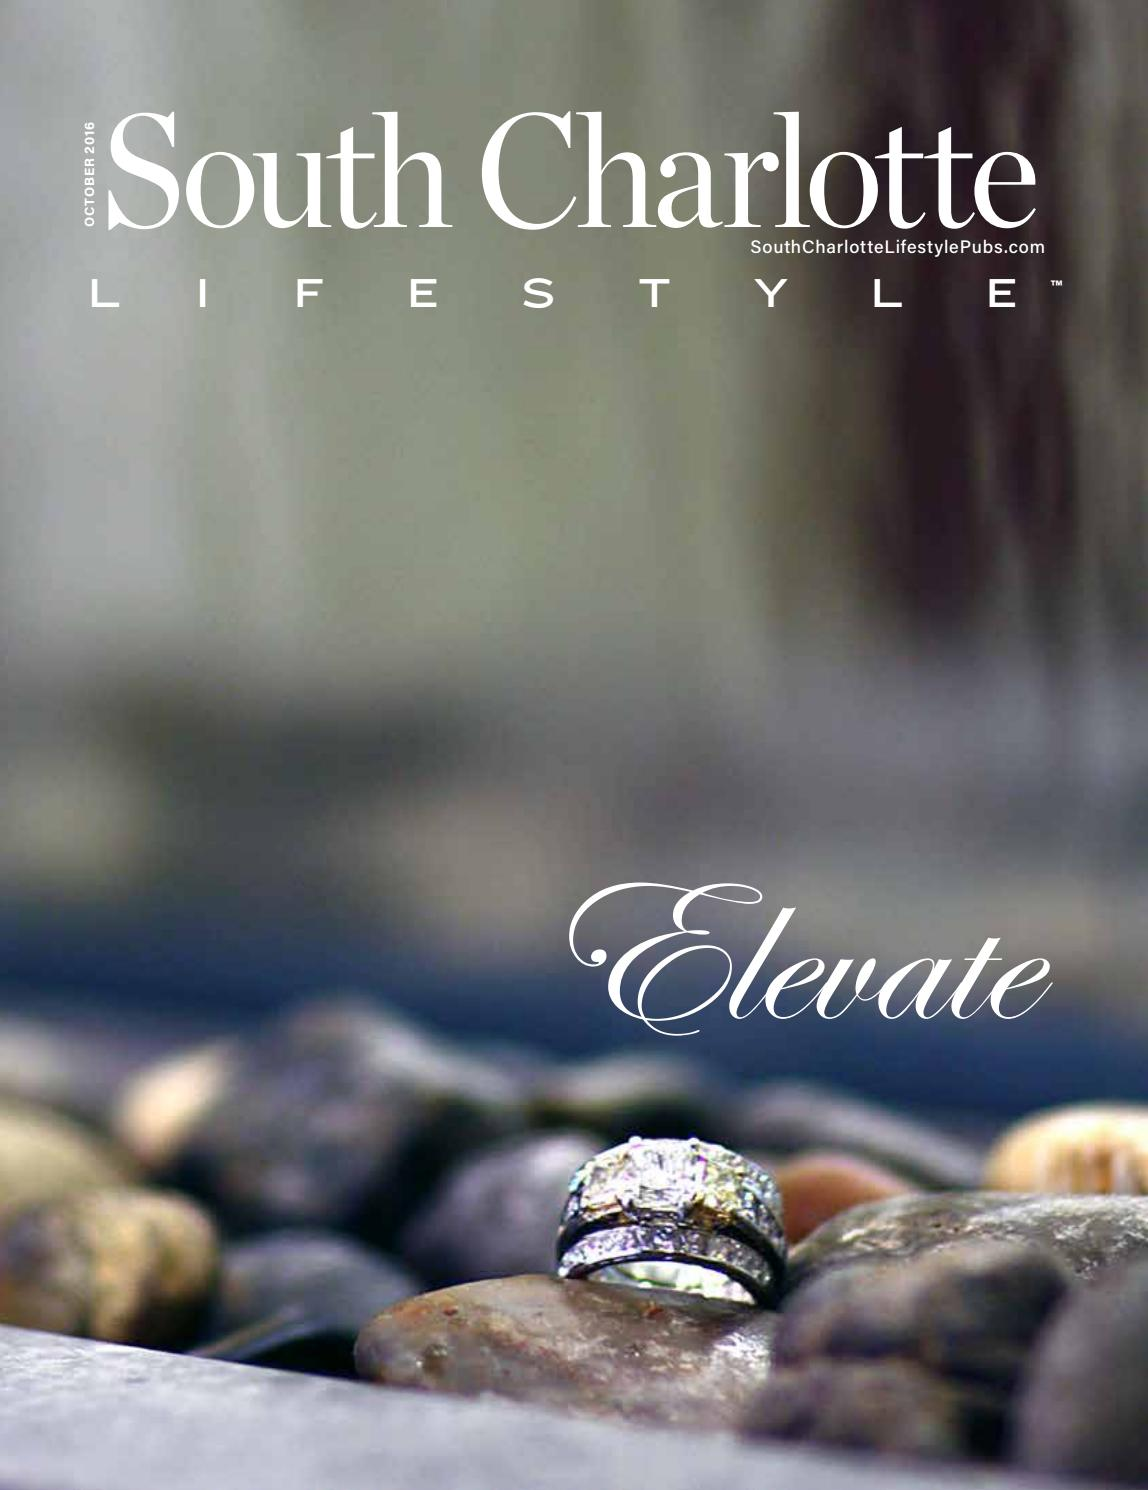 South Charlotte October By Lifestyle Publications Issuu - Invoice statement template free rocco's online store